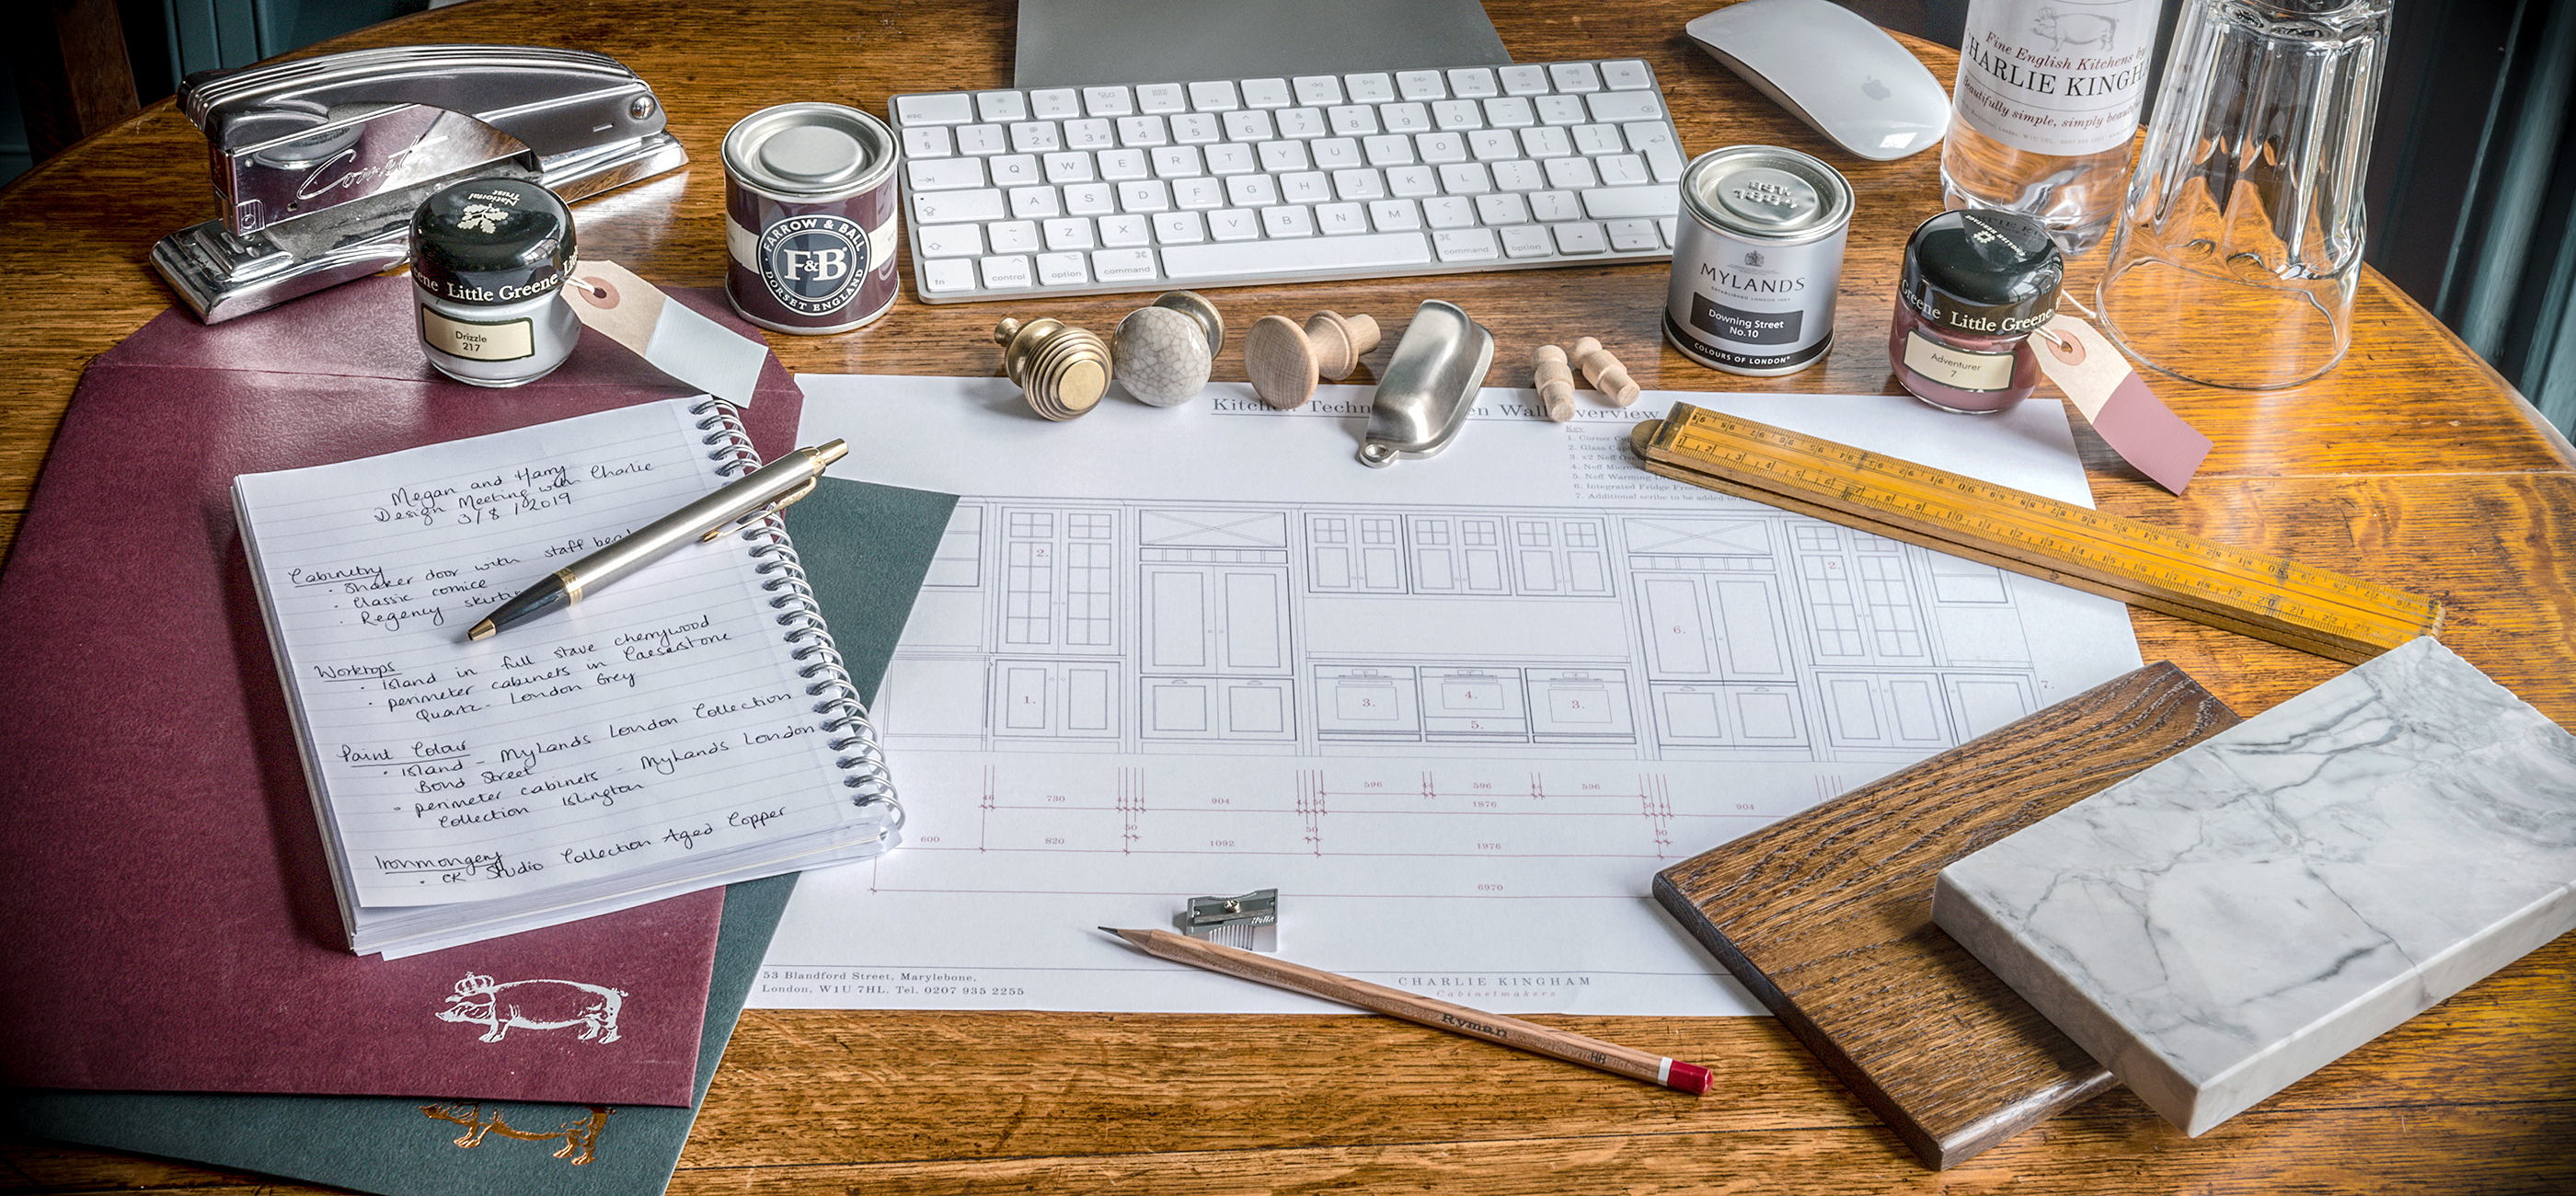 Charlie Kingham design room table flat lay with plans, samples and design notes.